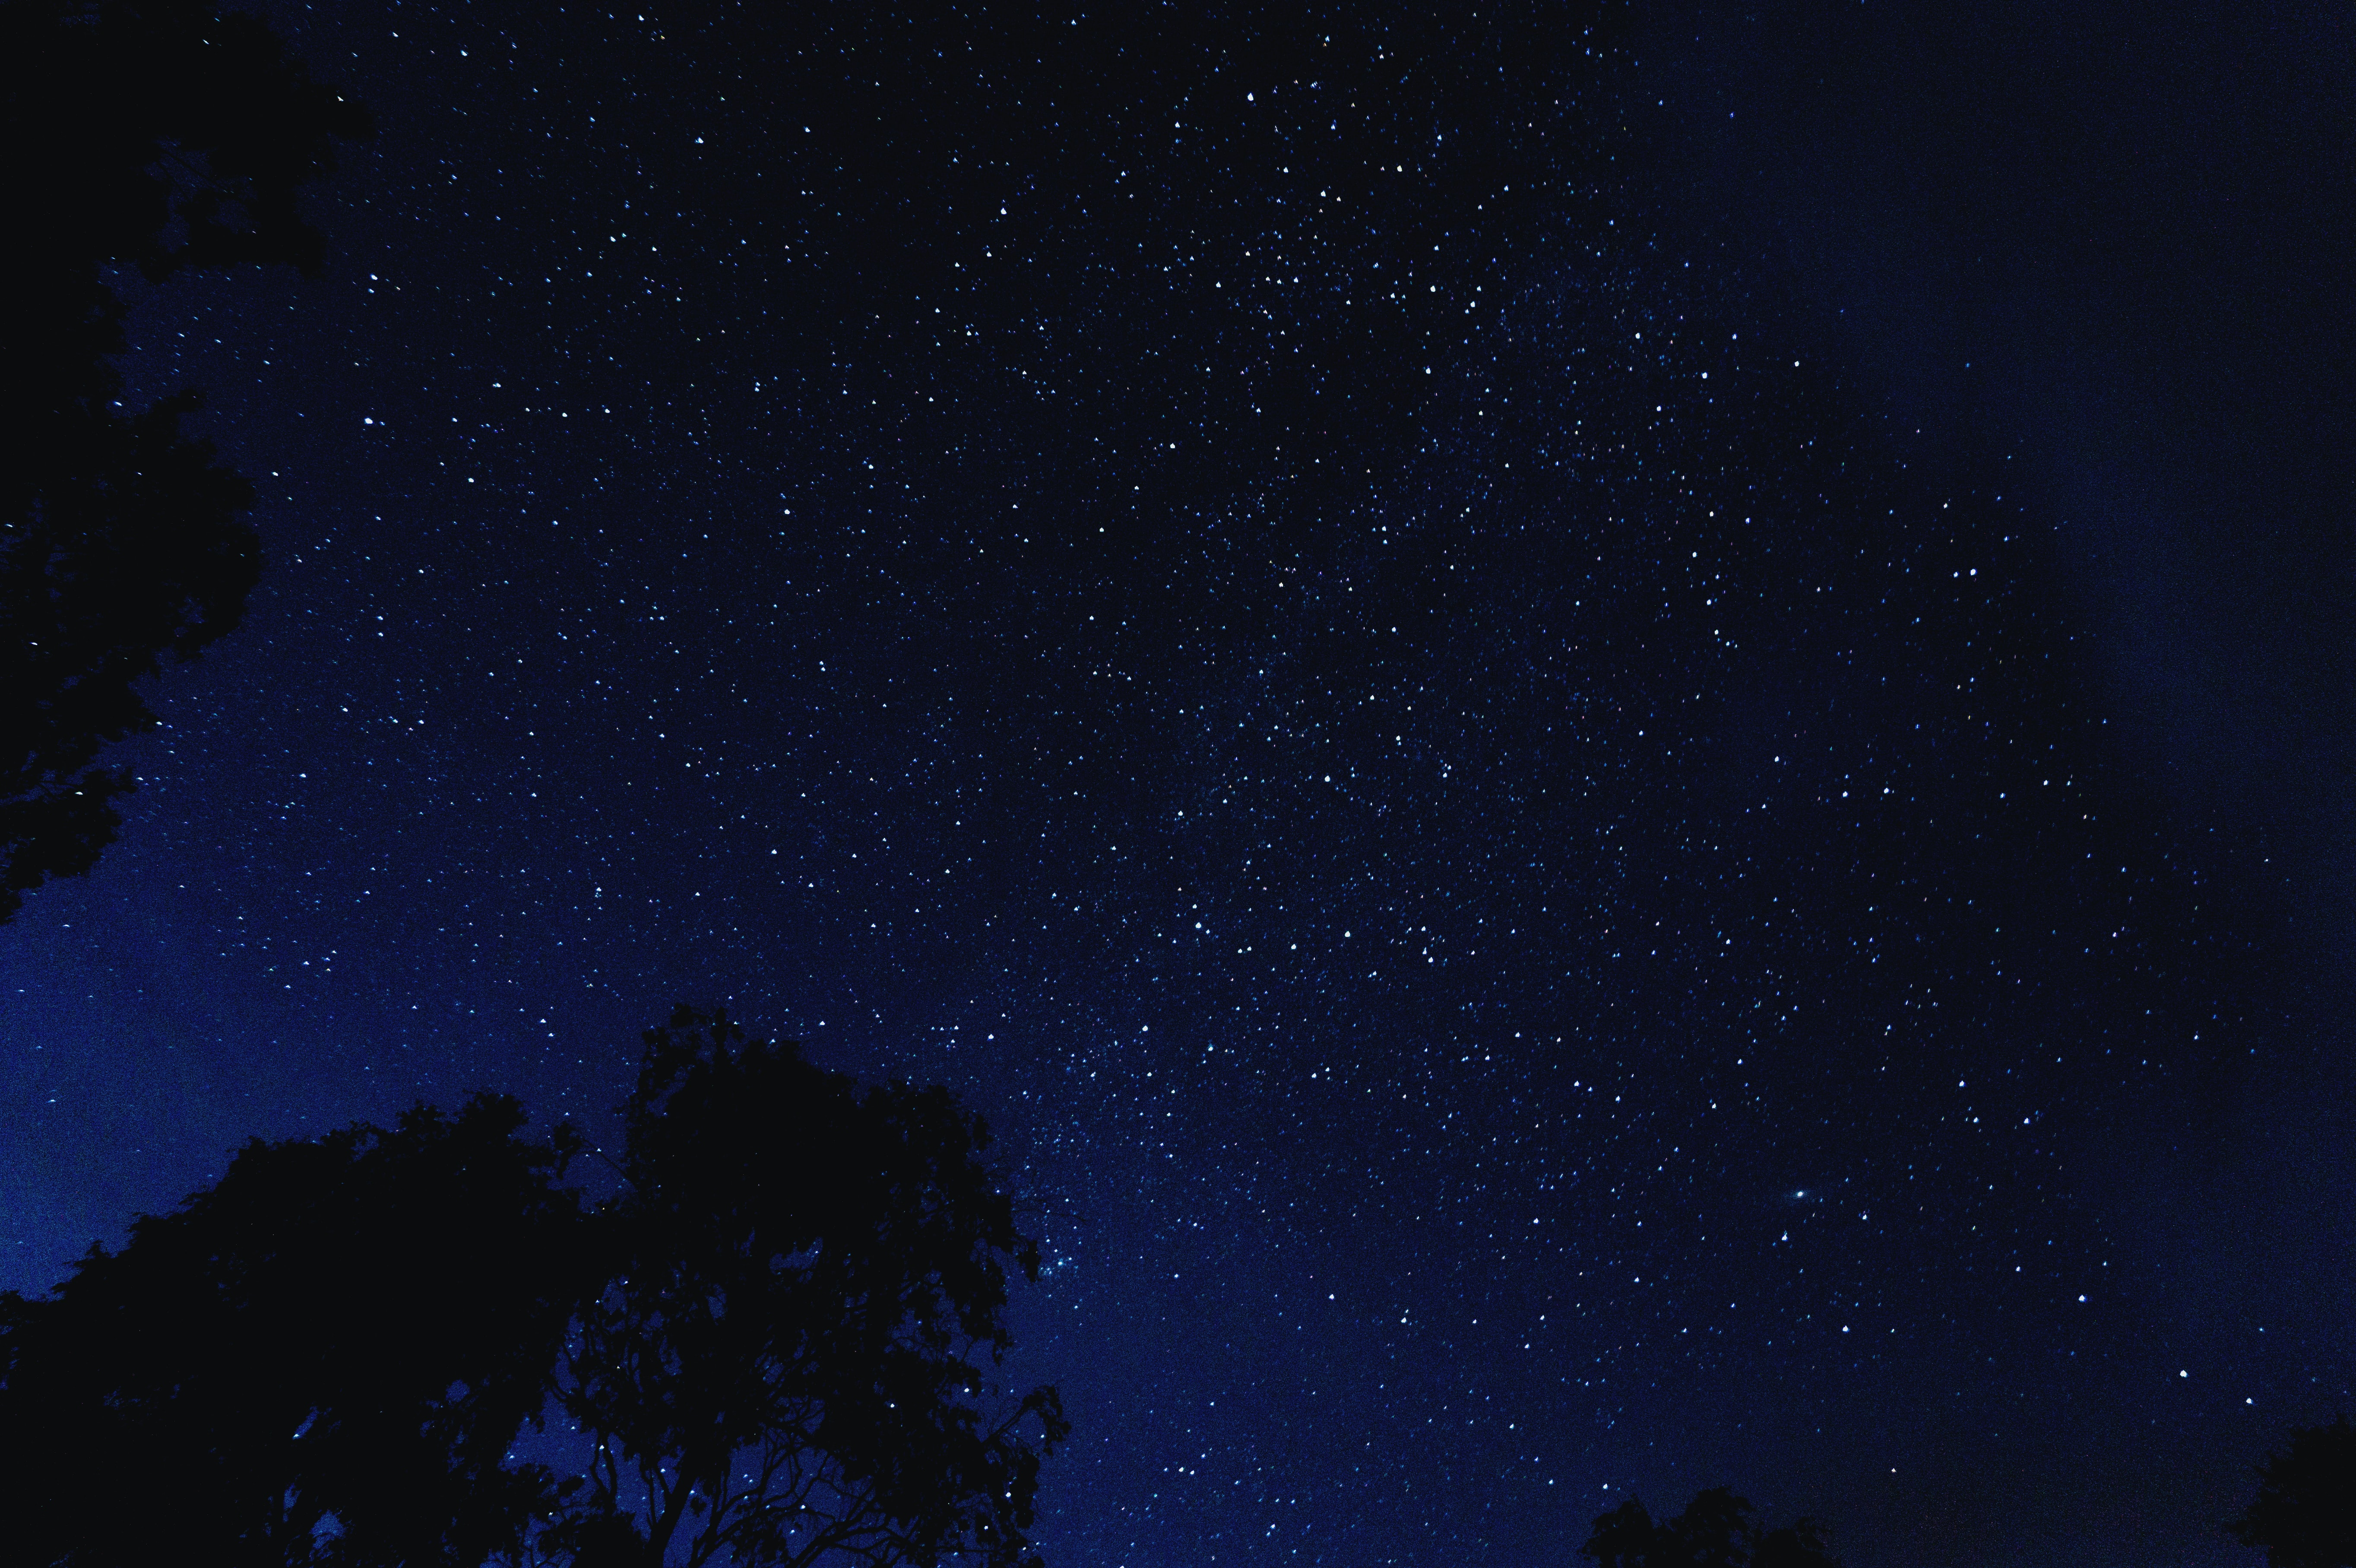 The star-studded dark blue night sky above the silhouette of trees.